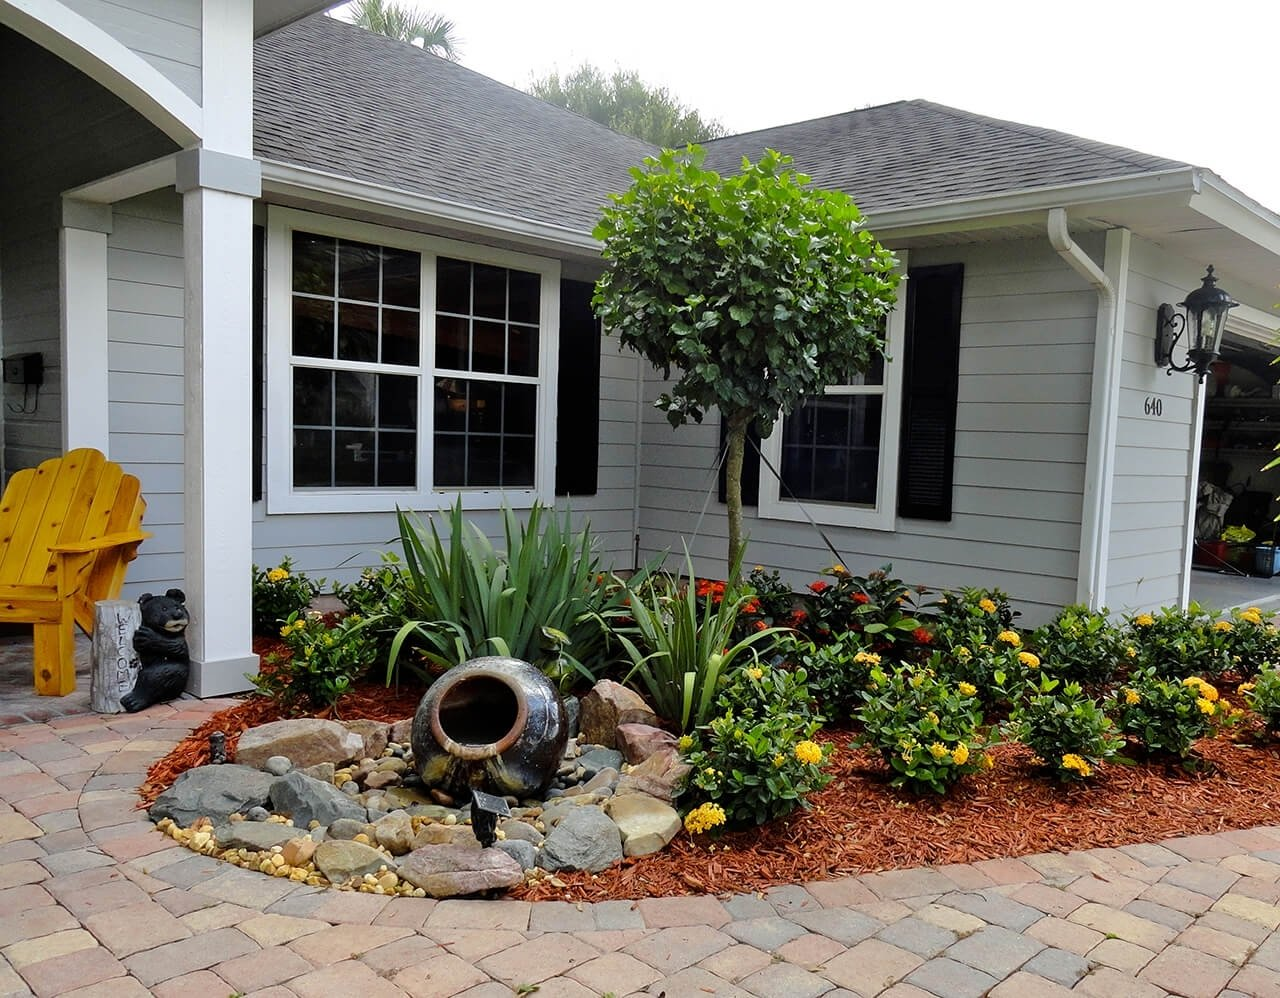 10 Unique Landscaping Ideas For Front Yard 50 best front yard landscaping ideas and garden designs for 2018 9 2021